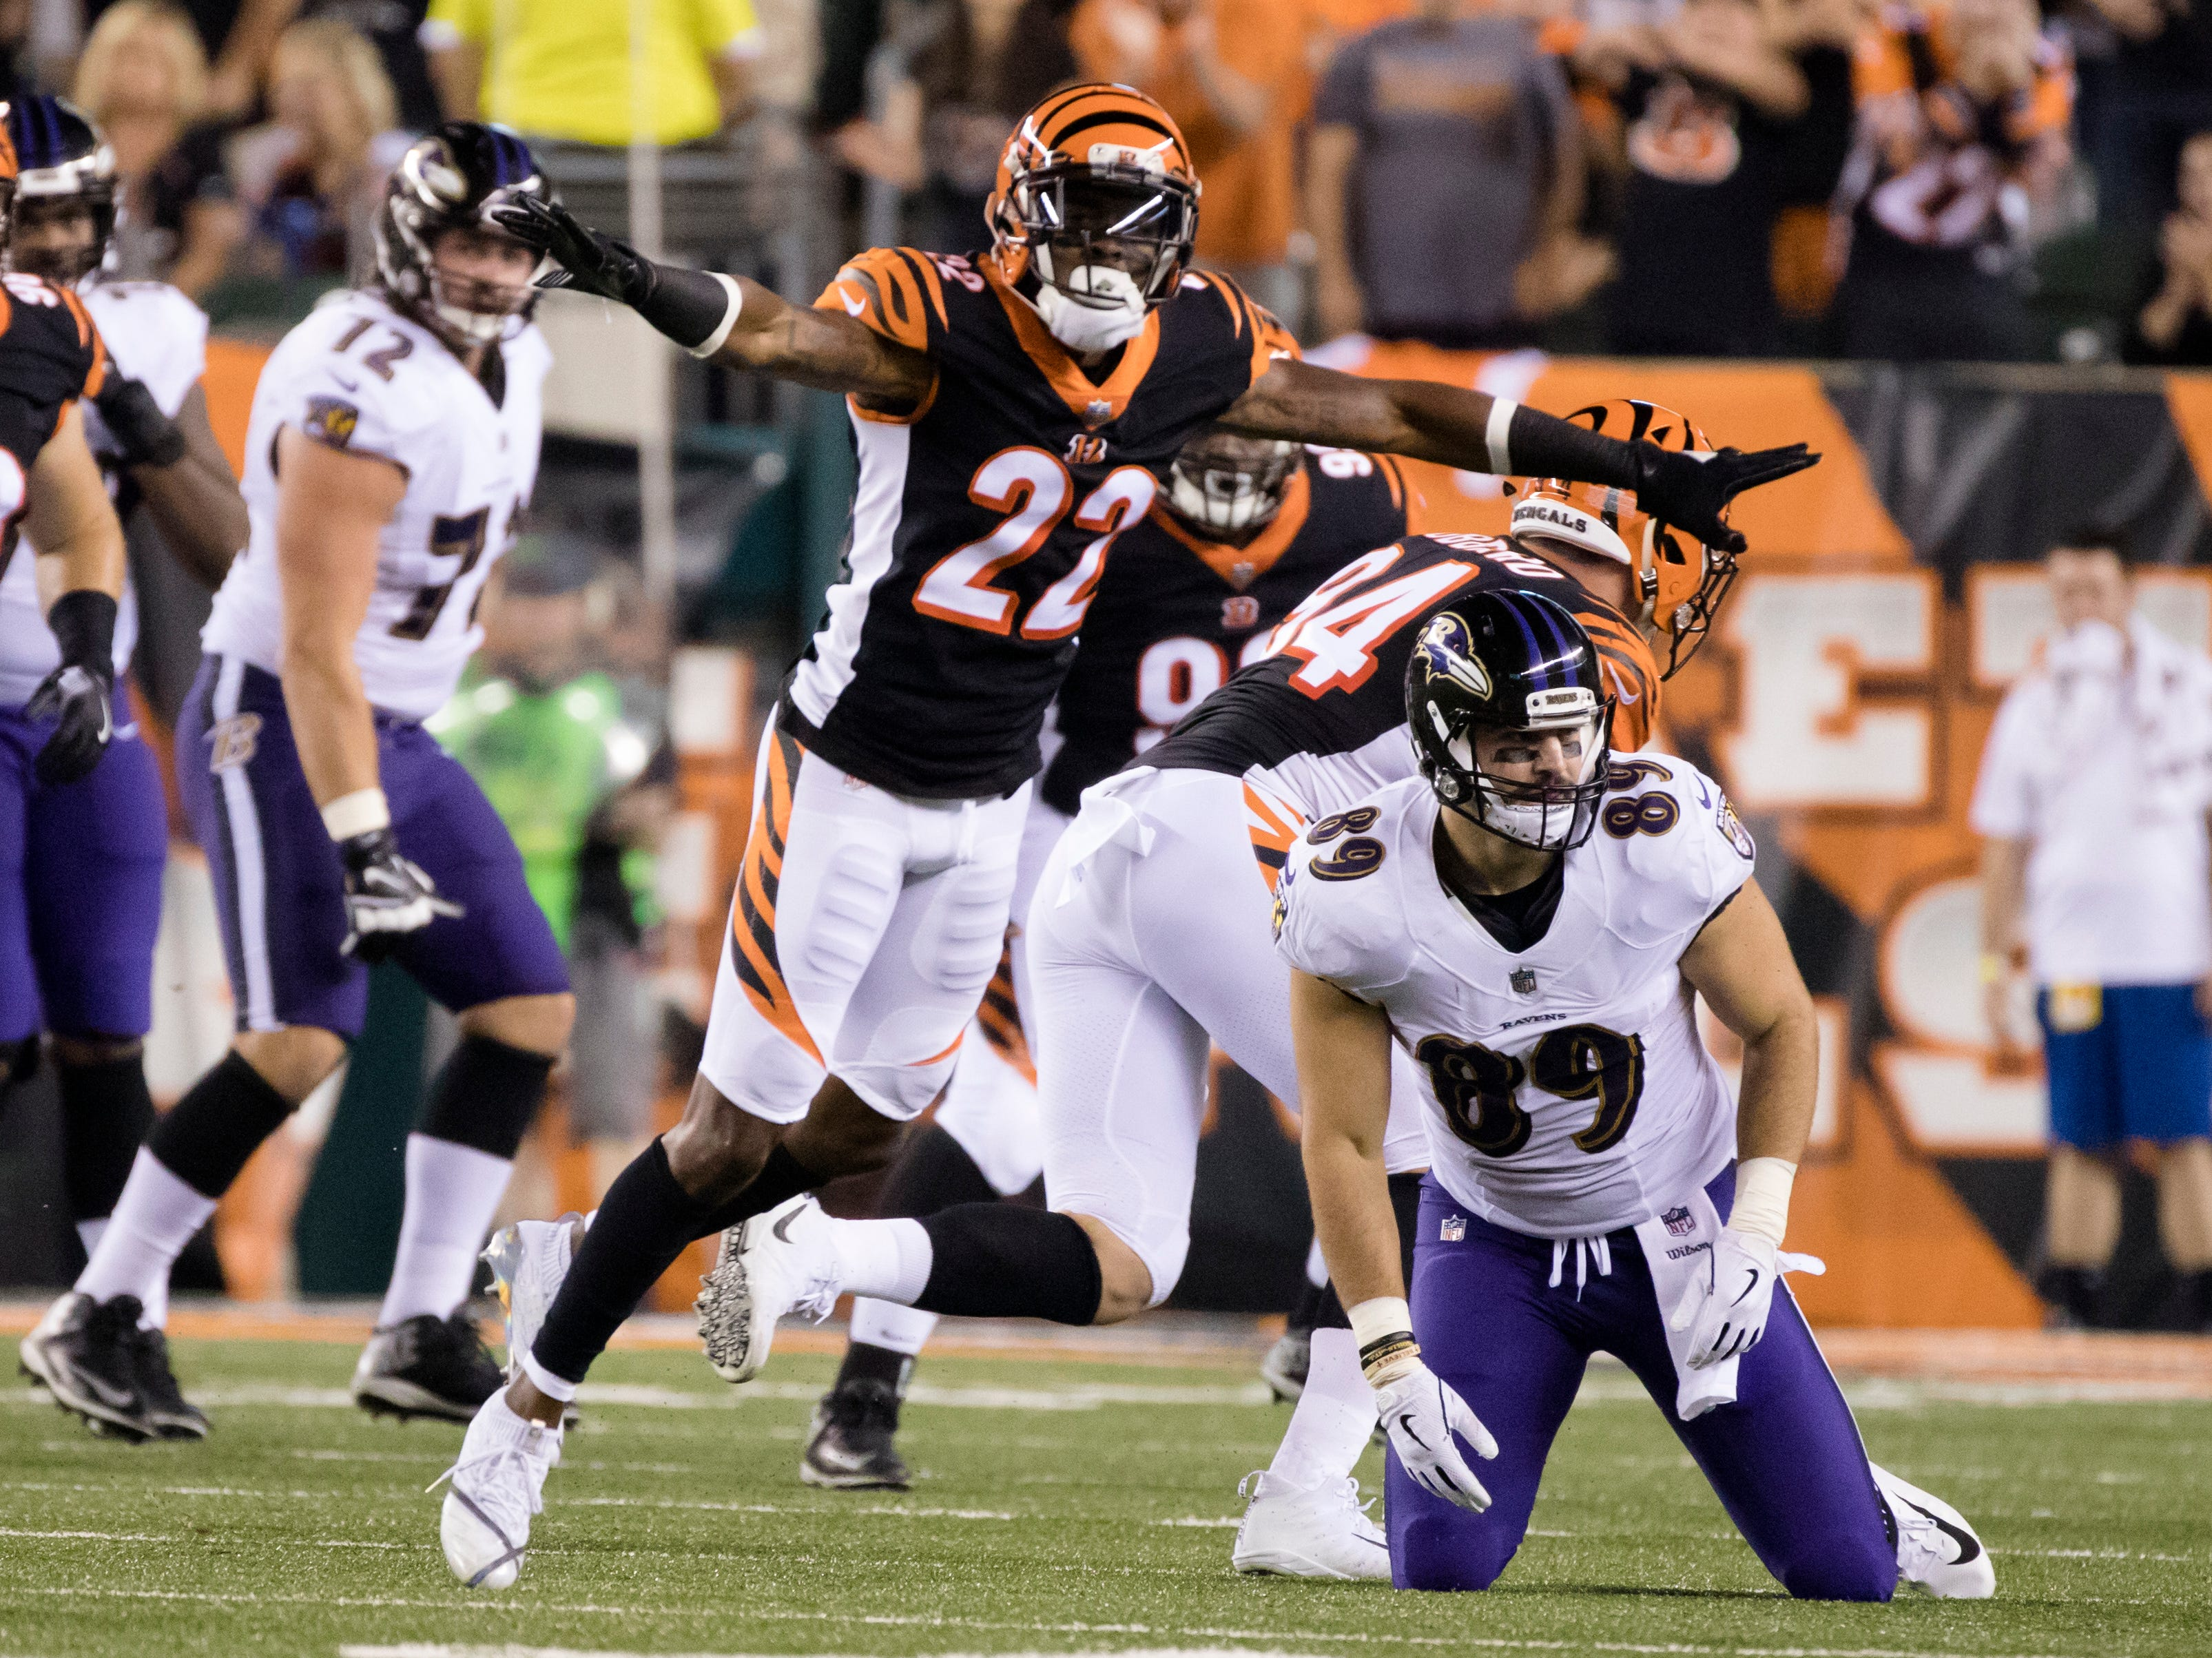 Cincinnati Bengals cornerback William Jackson (22) celebrates after breaking up a pass intended for Baltimore Ravens tight end Mark Andrews (89) during the Week 2 NFL game between the Cincinnati Bengals and the Baltimore Ravens, Thursday, Sept. 13, 2018, at Paul Brown Stadium in Cincinnati.